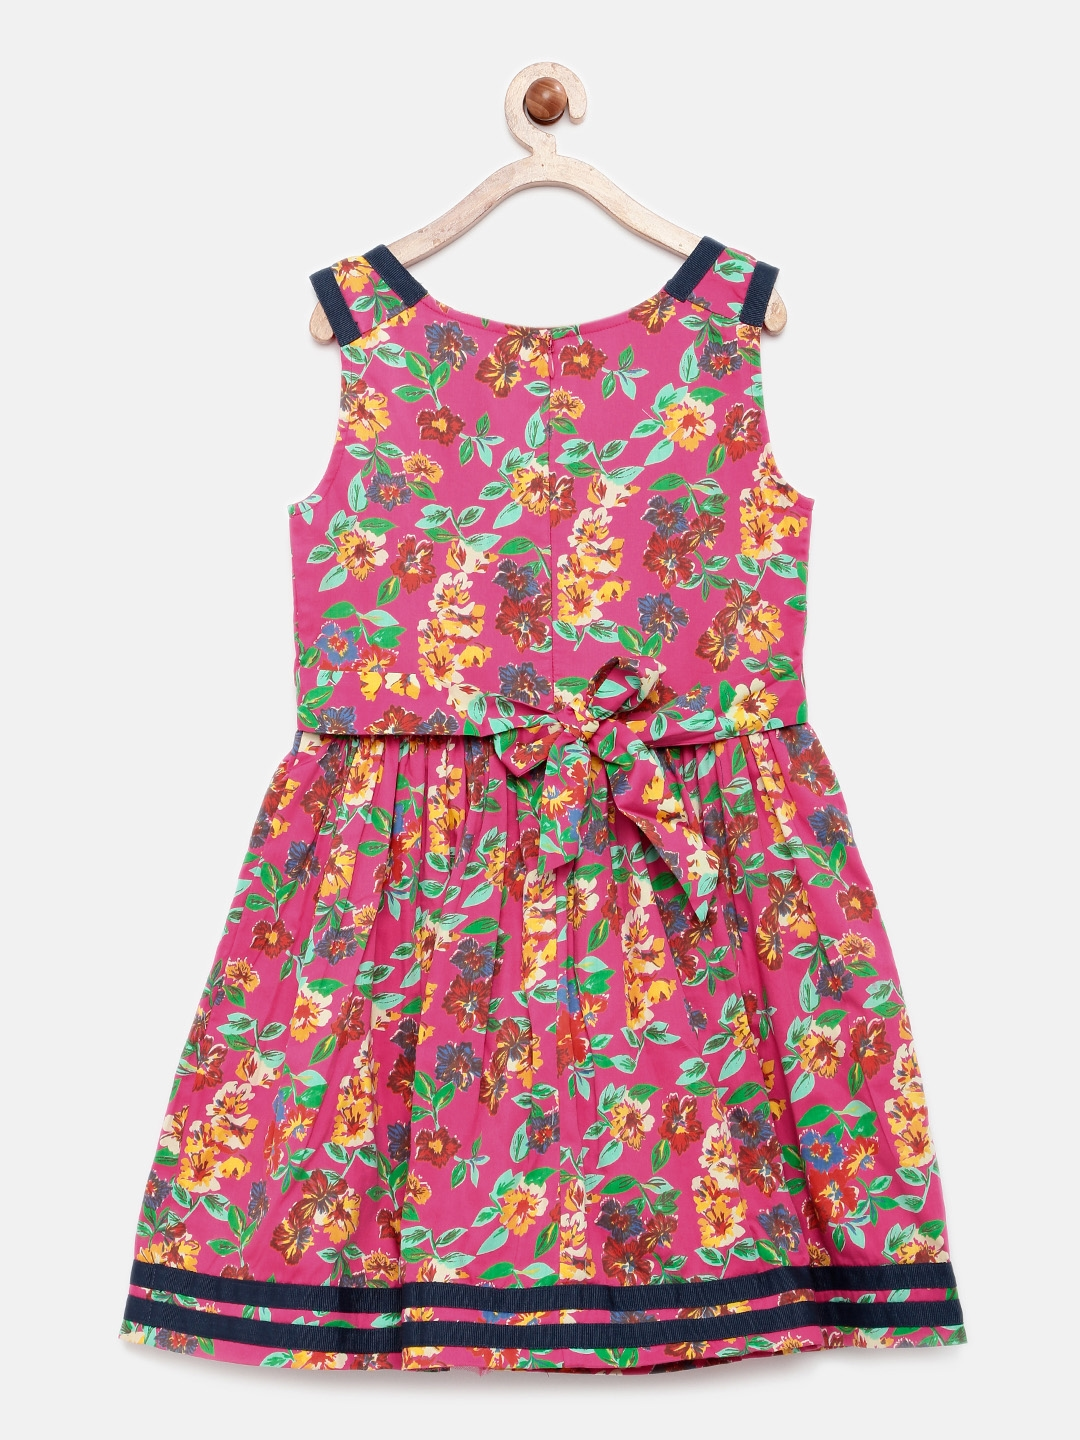 b0a9bc484d09a Buy U.S. Polo Assn. Kids Girls Pink Printed Fit And Flare Dress ...